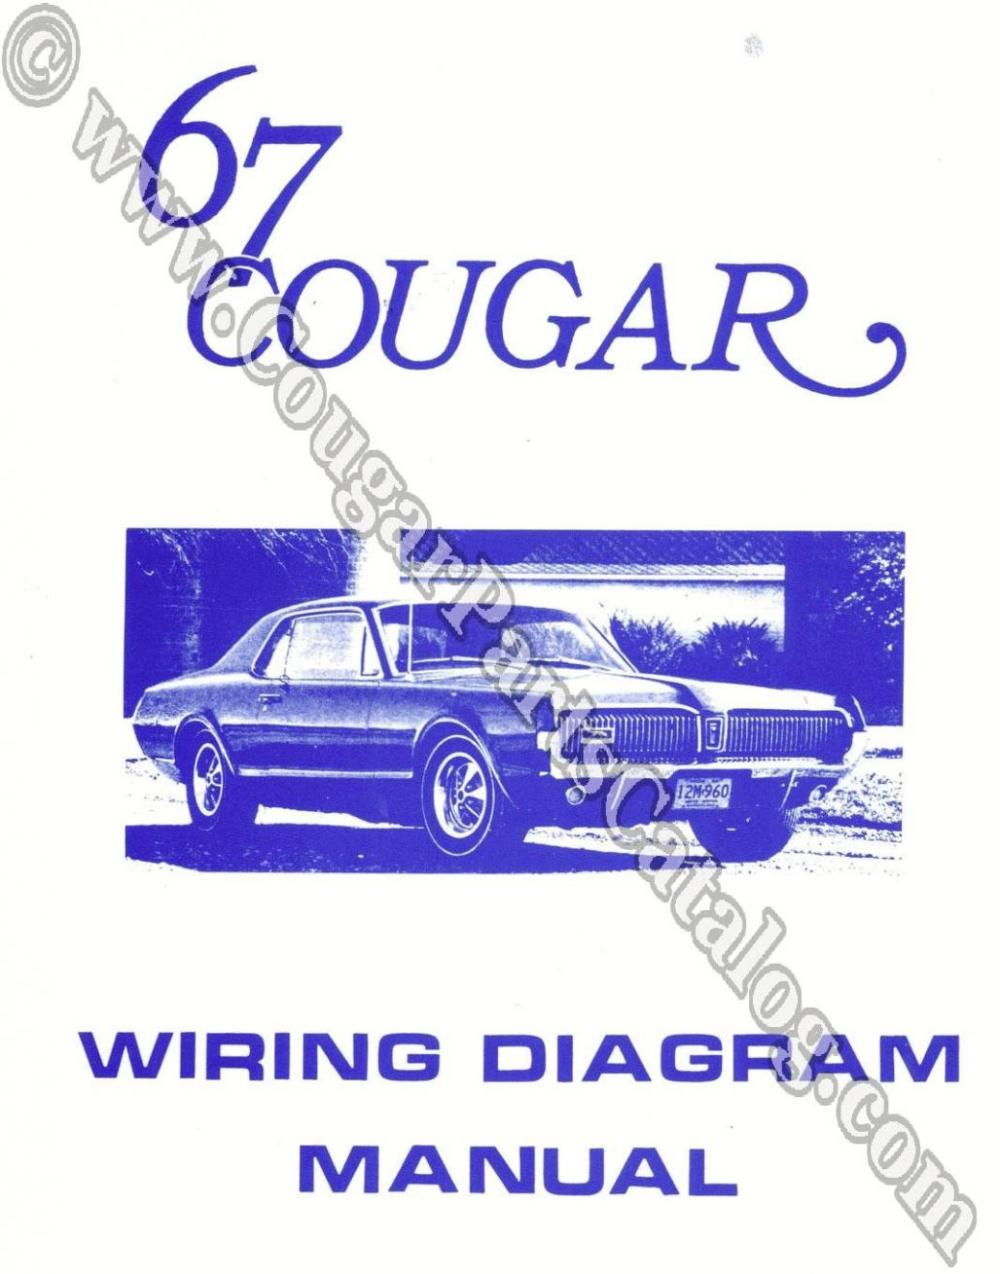 medium resolution of 67 cougar wiring harness schematic wiring diagrams system67 cougar wiring harness schematic schema diagram database 67